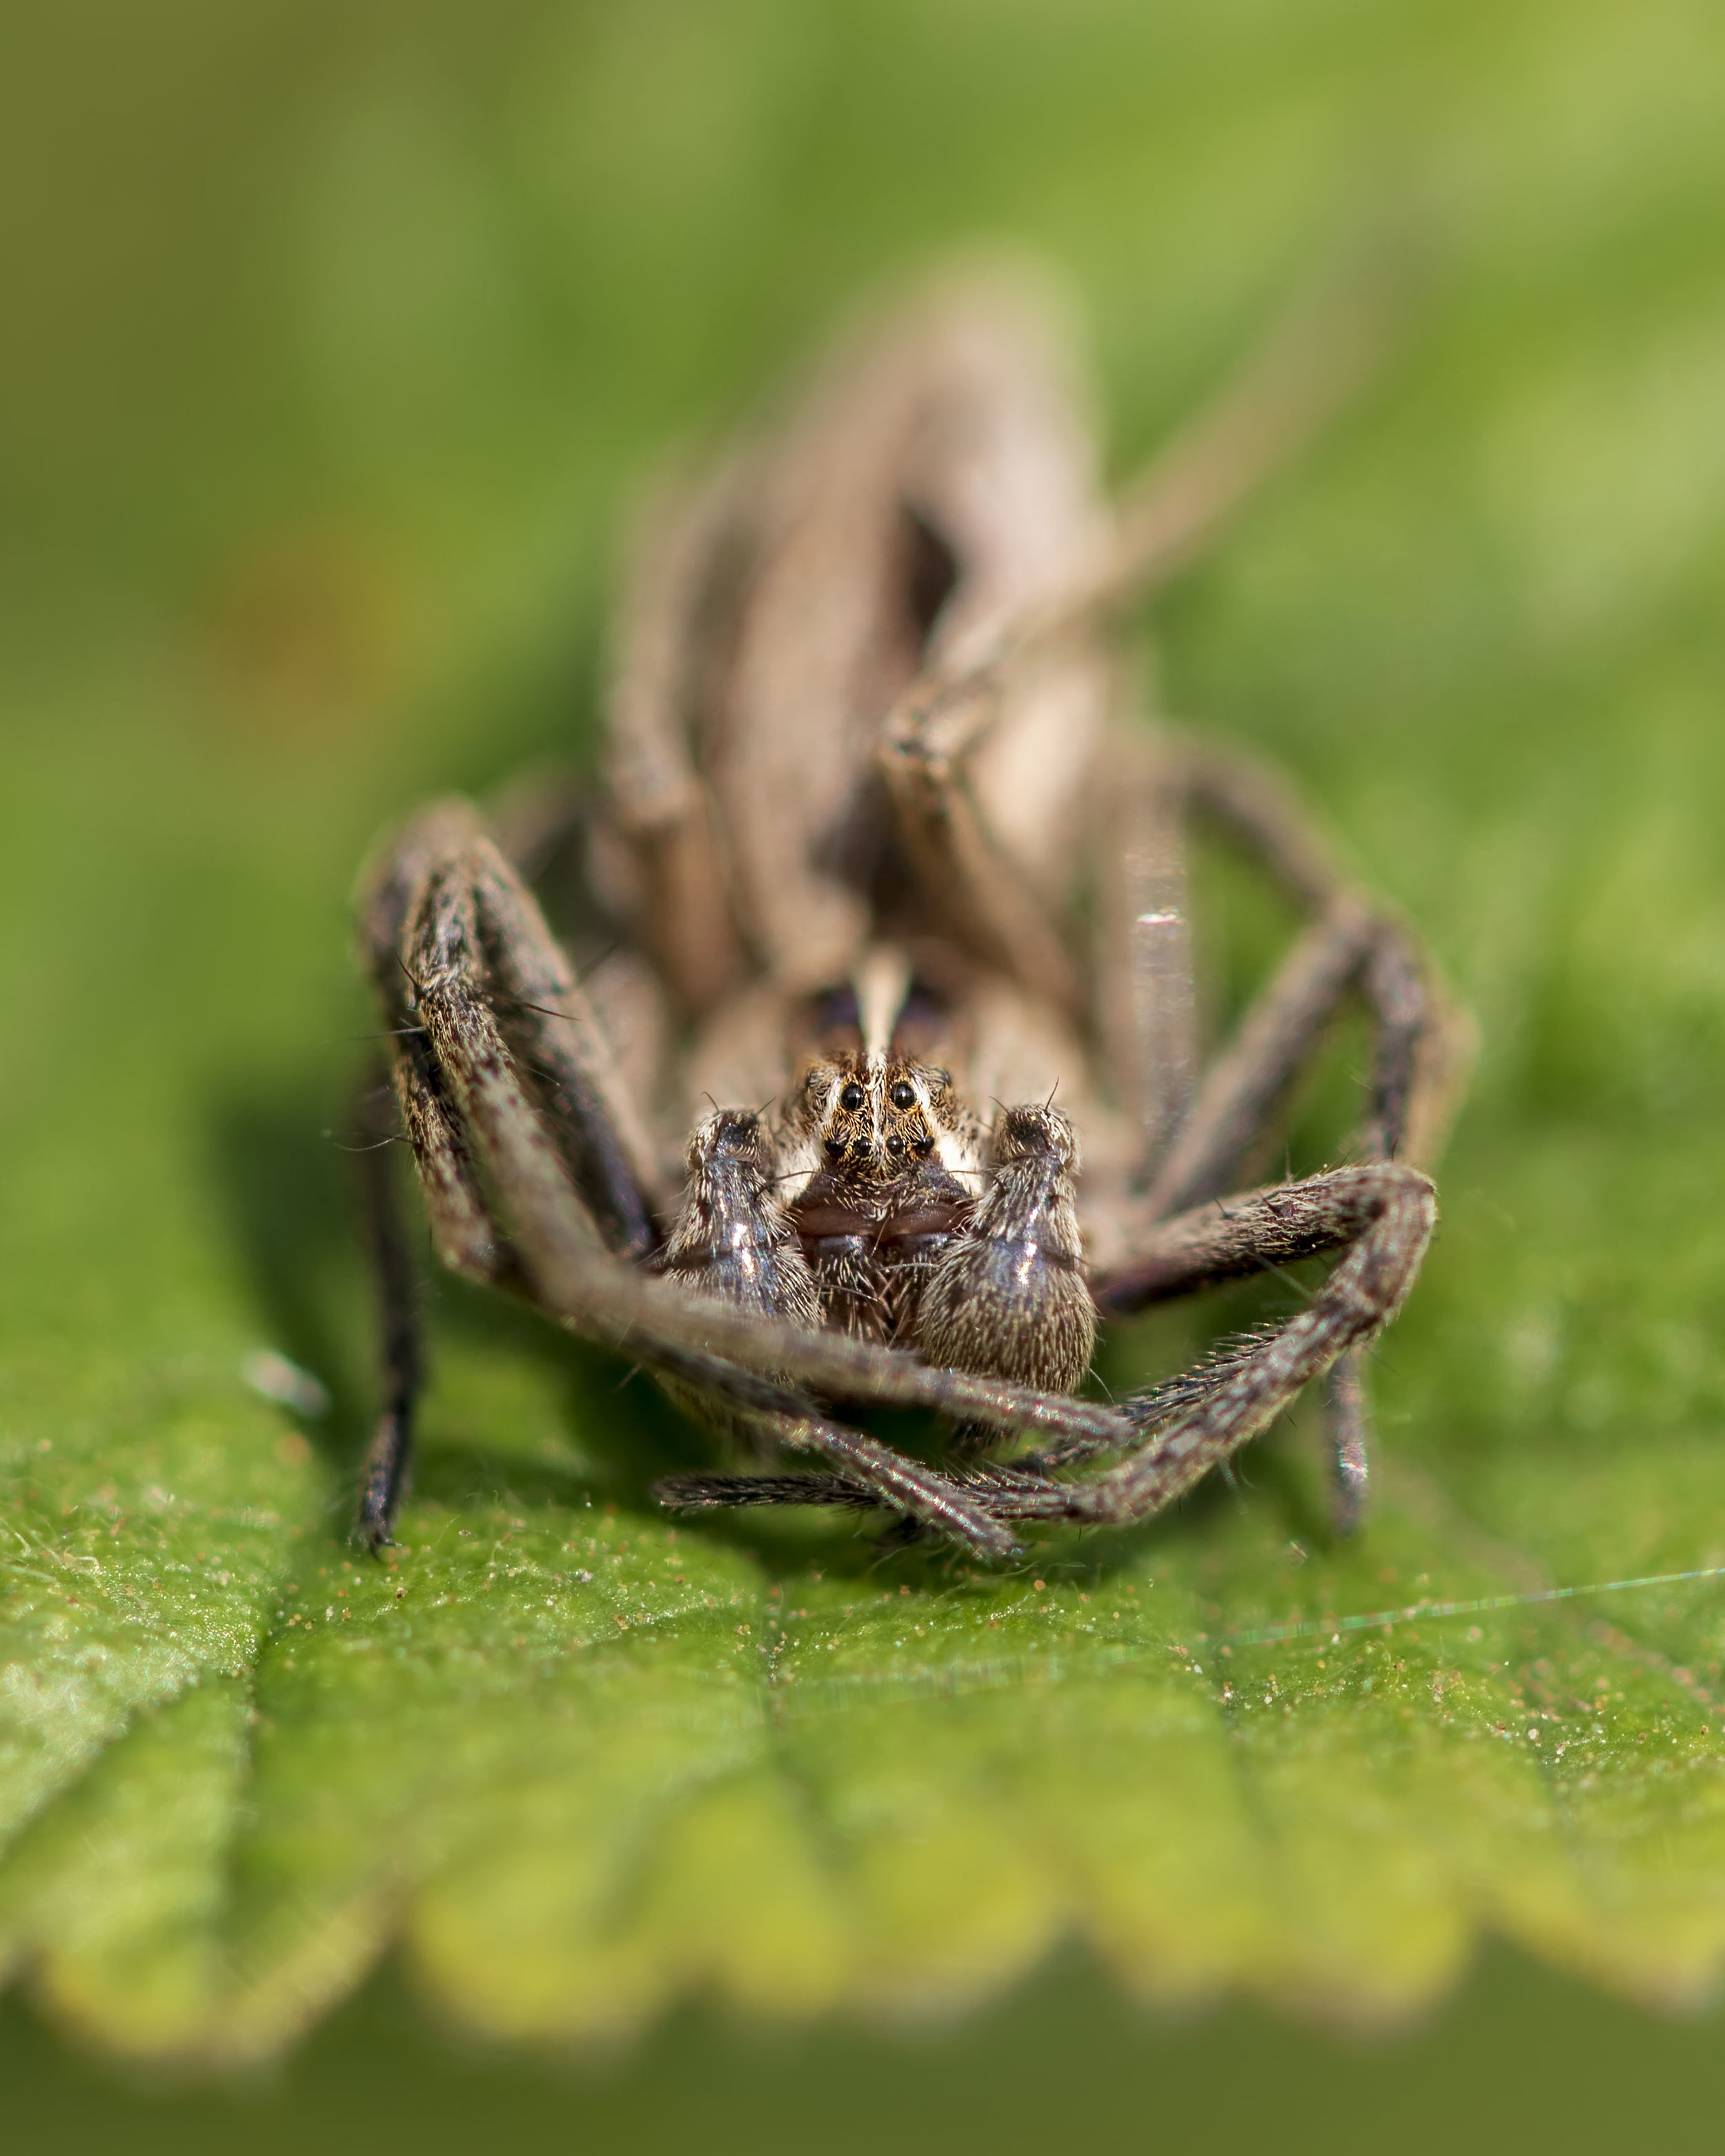 Nursery-web Spider 22nd April.jpg